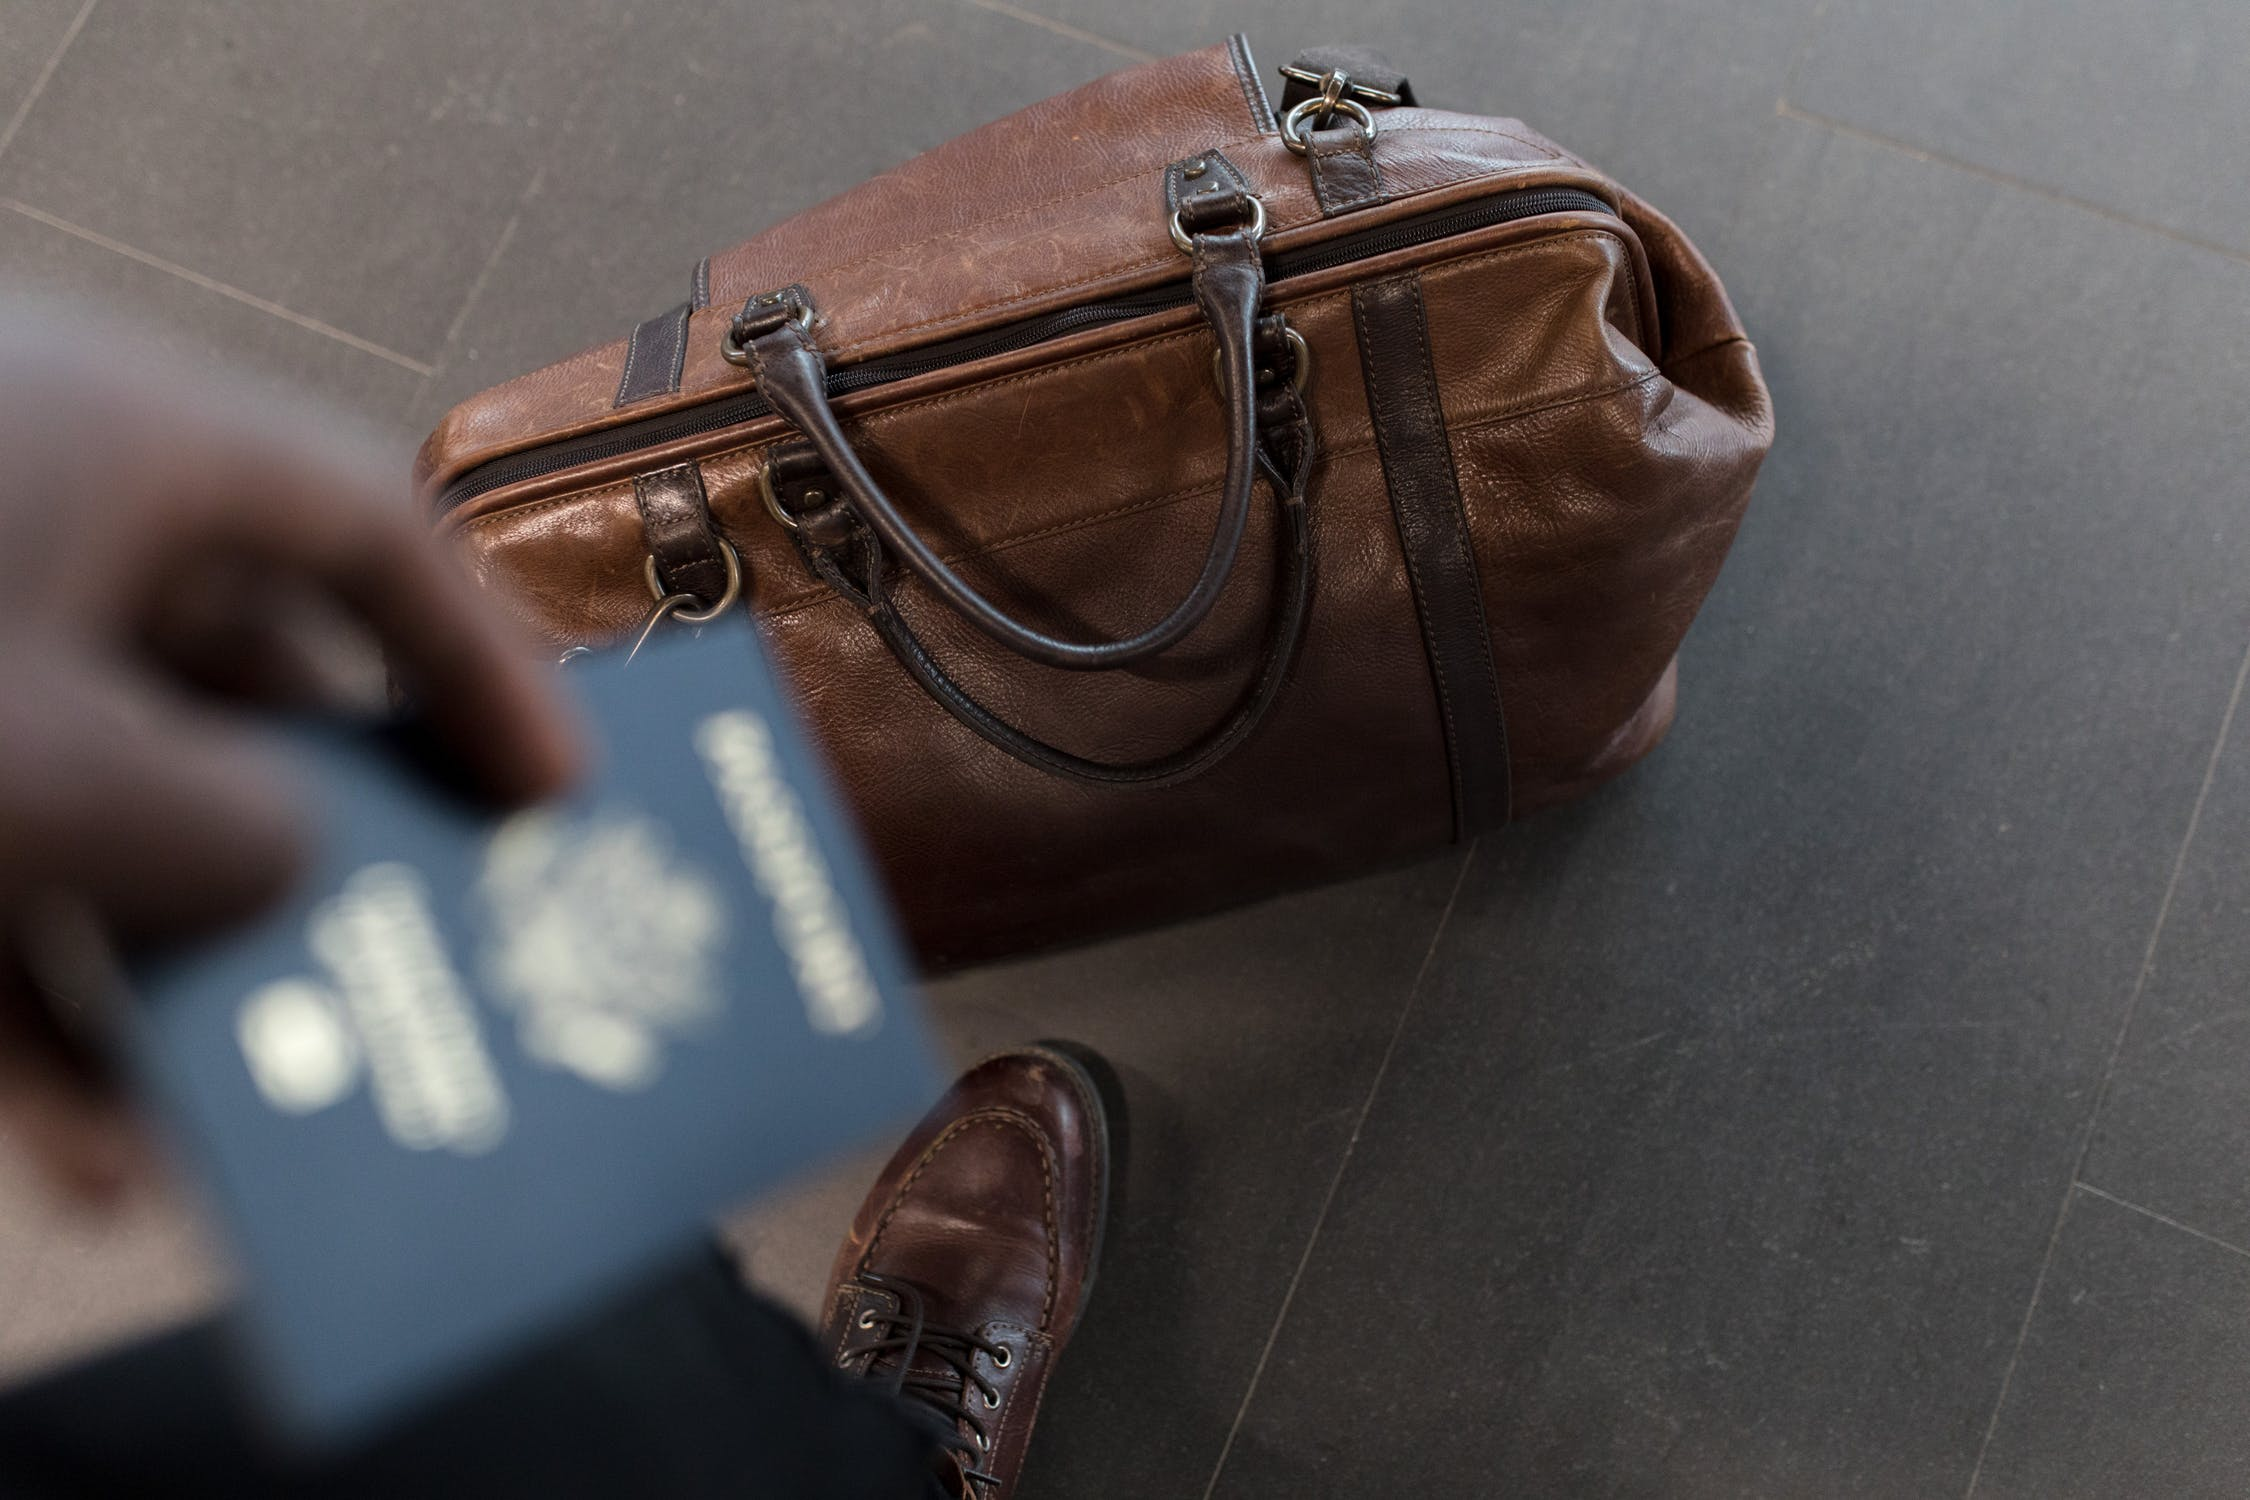 Travel Internationally With Only a Carry On